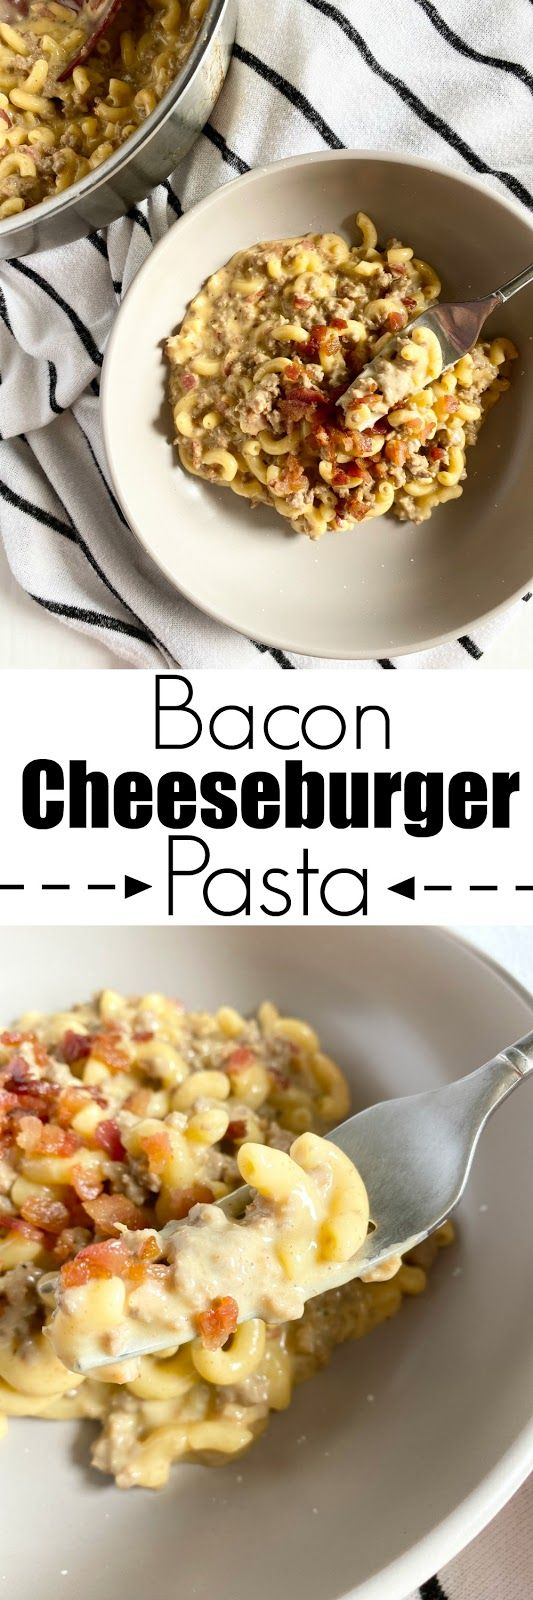 All the flavors of a juicy bacon cheeseburger in pasta! This Bacon Cheeseburger Pasta is a family favorite. So I teased…